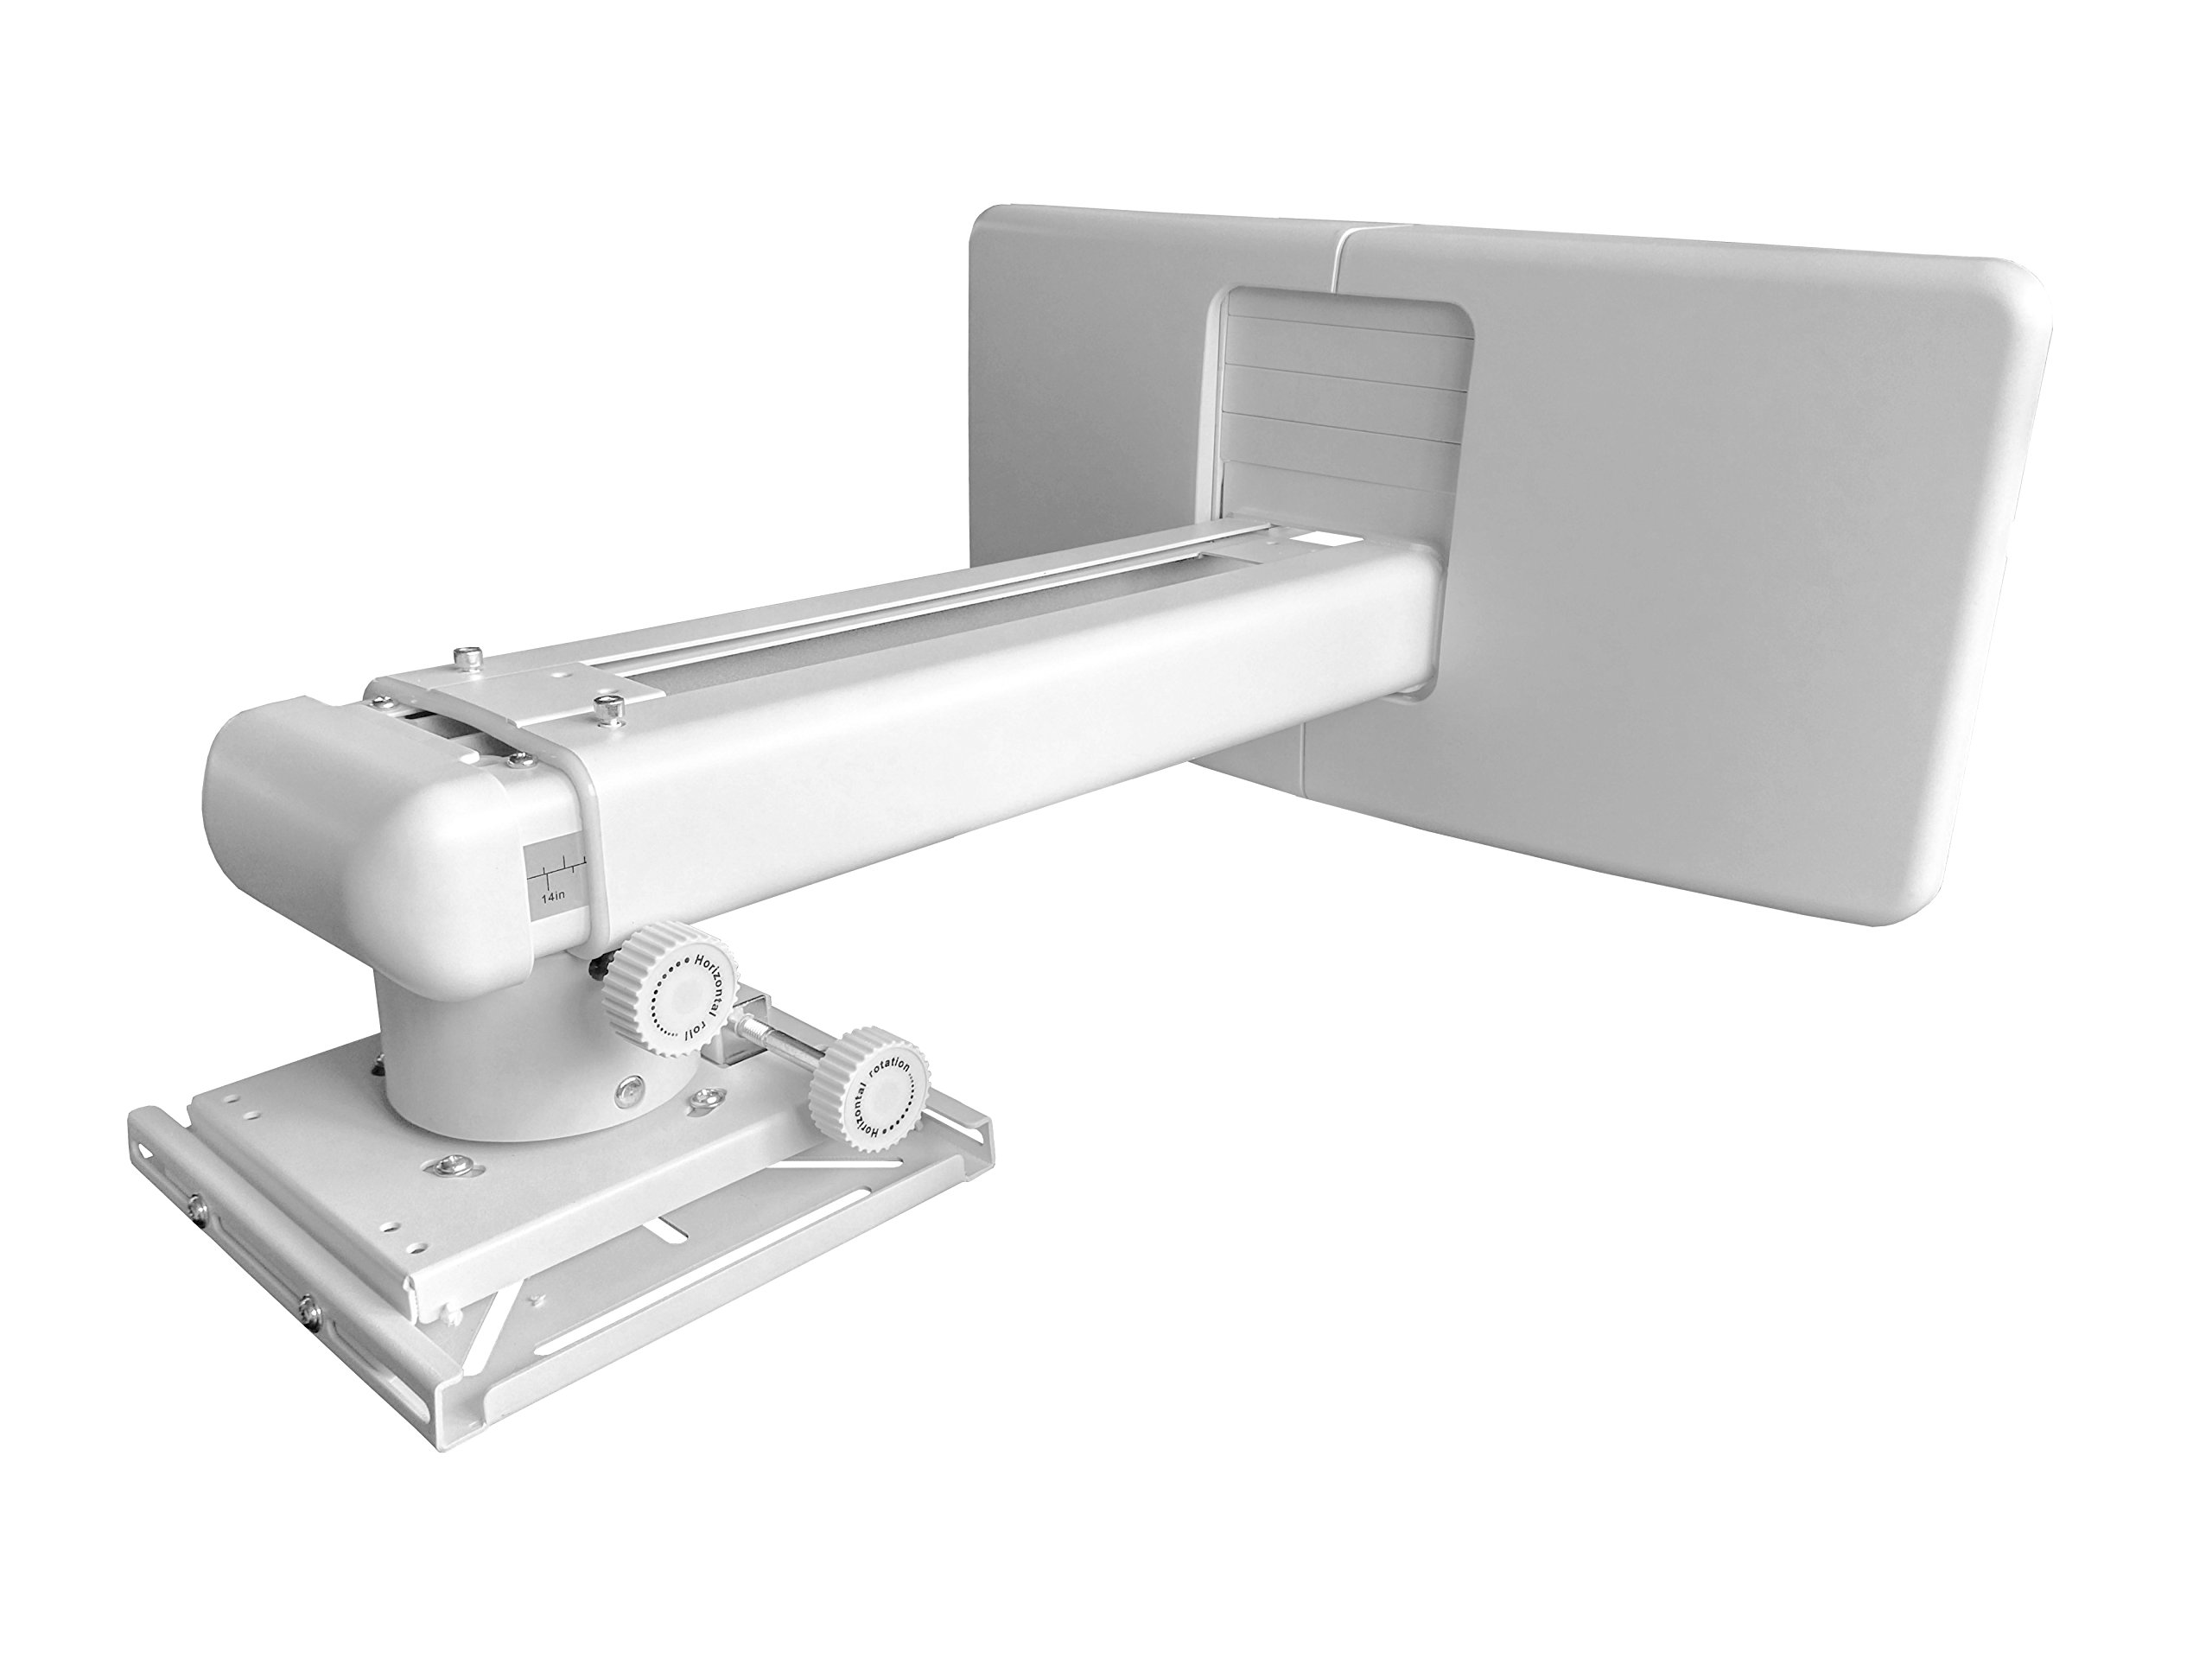 UST Projector Mount,Extension Length:14.37''-25.28'' with Universal Mounting Plate